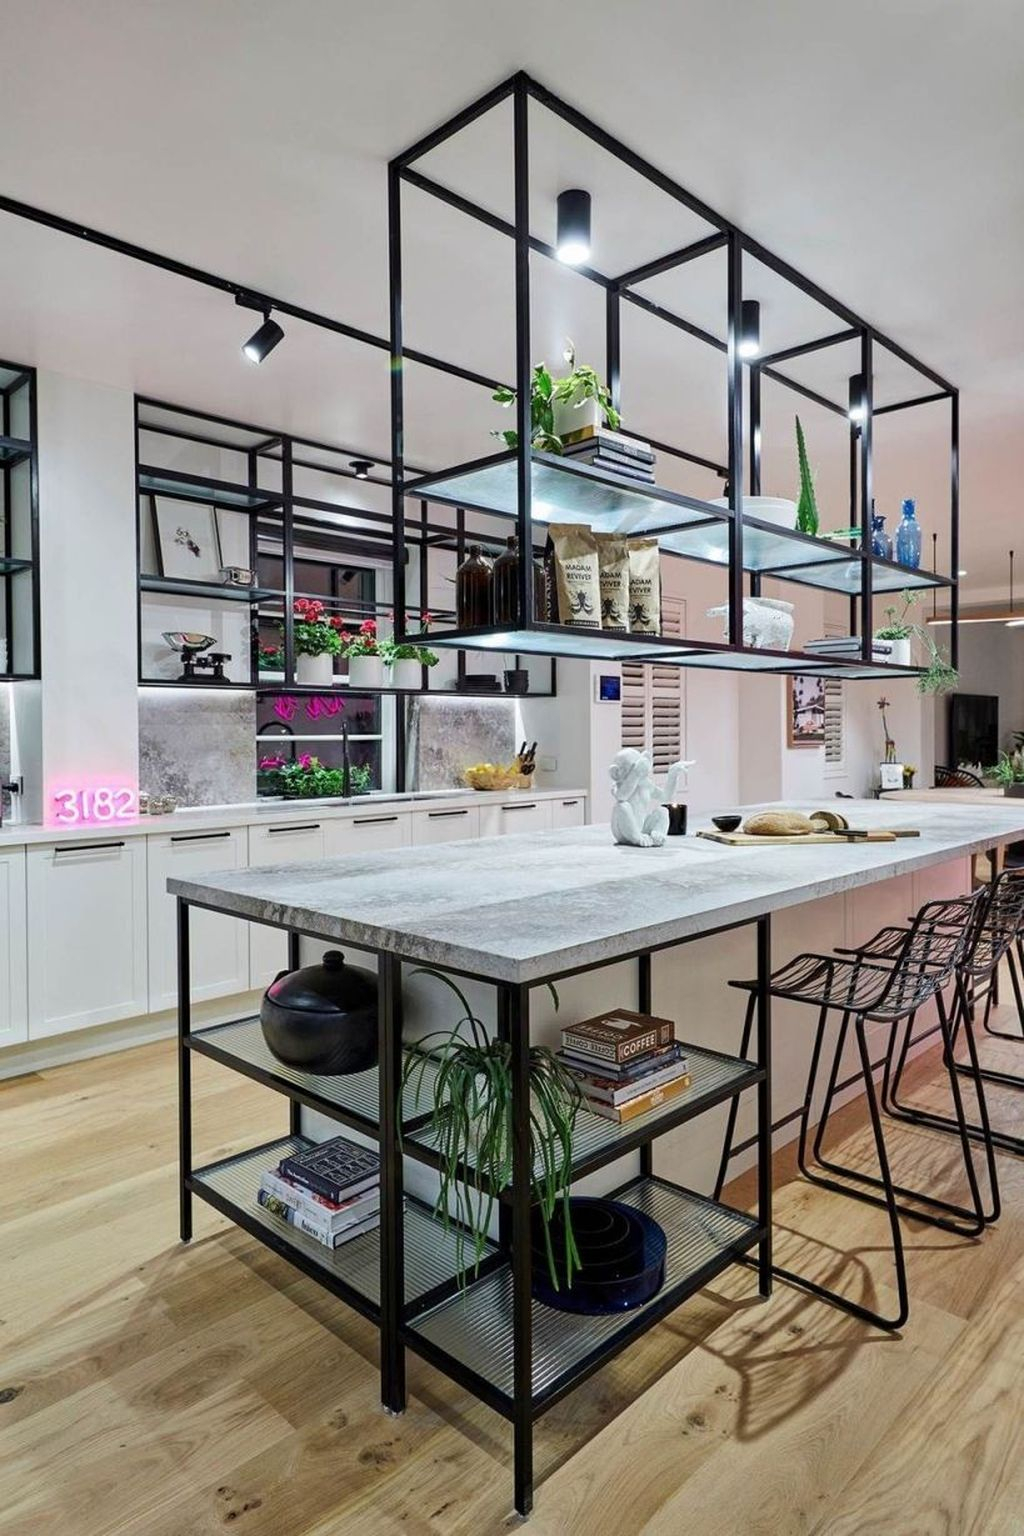 Cool Diy Kitchen Design Ideas You Will Definitely Want To Keep 27